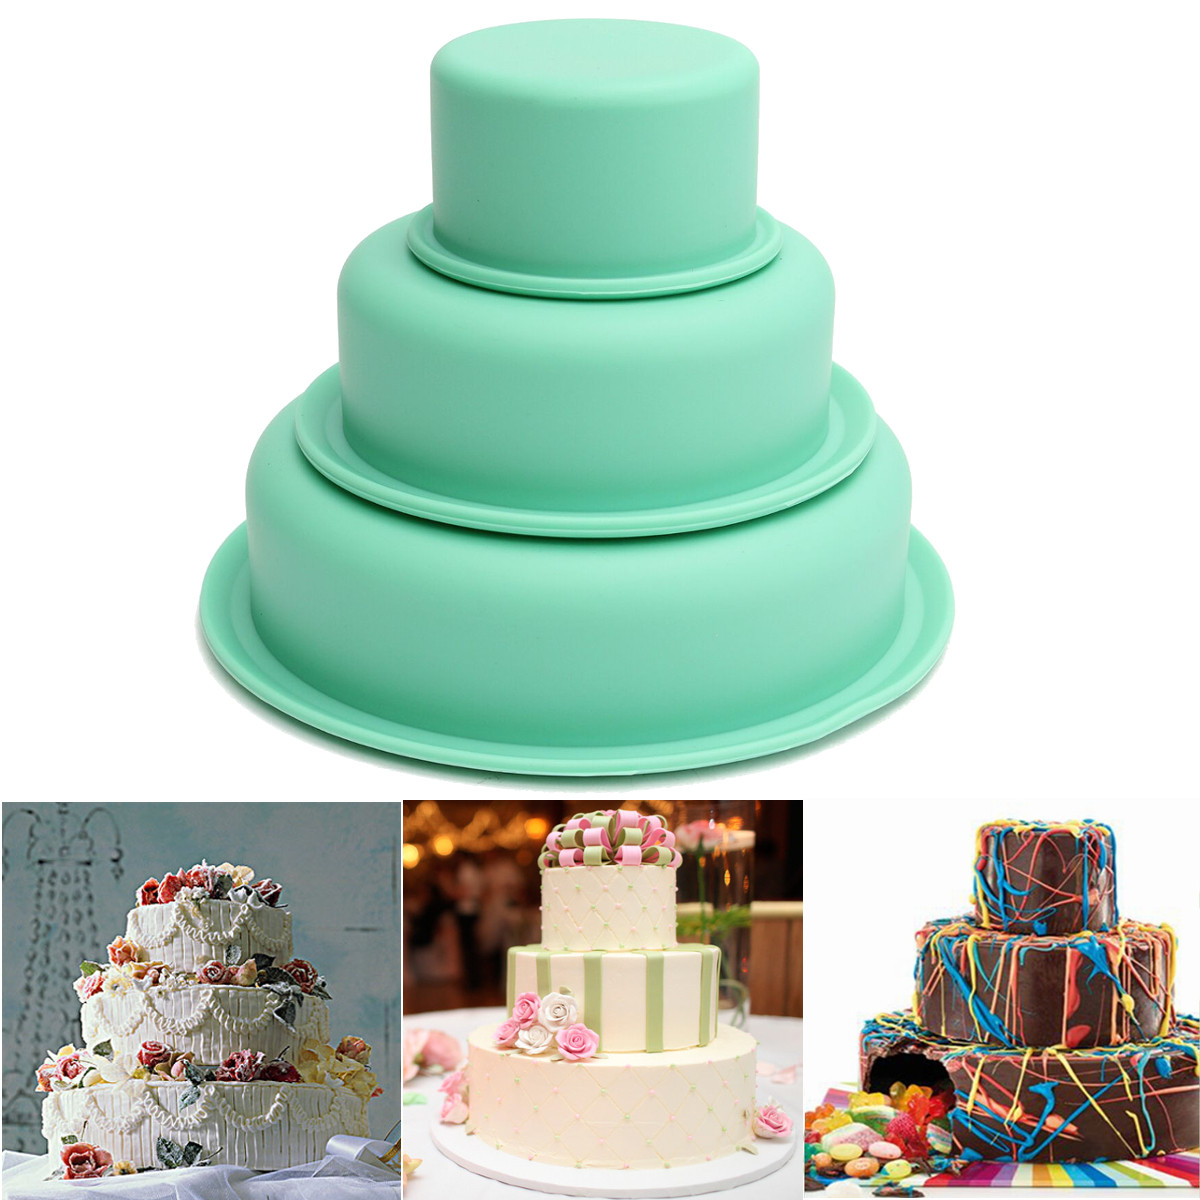 3 Layers Silicone Tier Cake Pan Round Baking Bareware Mold Pastry Tray Mould by